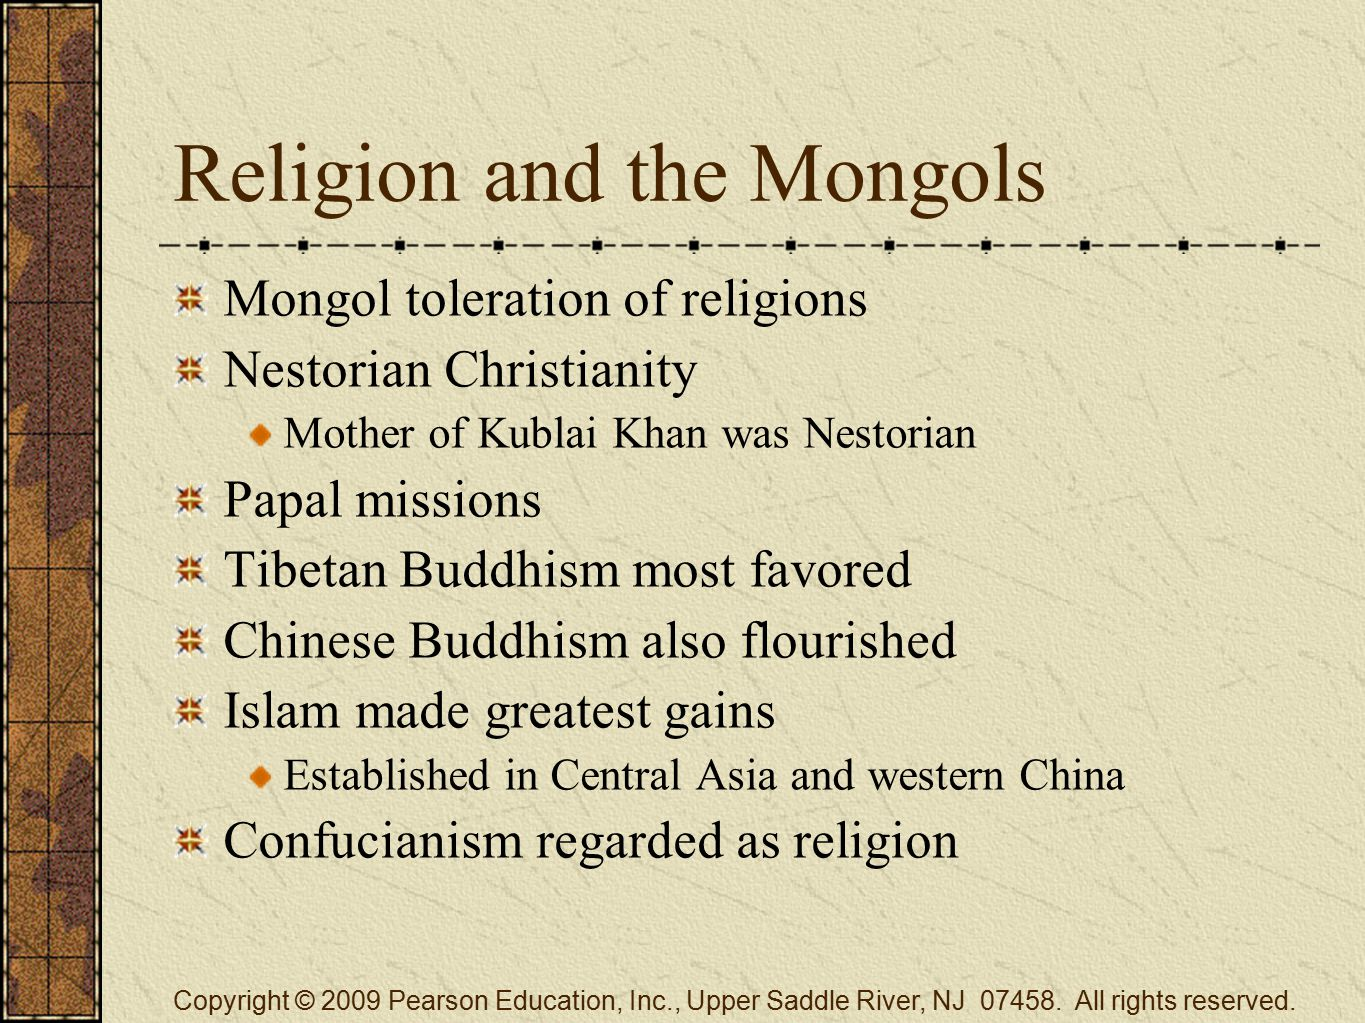 Religion and the Mongols Mongol toleration of religions Nestorian Christianity Mother of Kublai Khan was Nestorian Papal missions Tibetan Buddhism most favored Chinese Buddhism also flourished Islam made greatest gains Established in Central Asia and western China Confucianism regarded as religion Copyright © 2009 Pearson Education, Inc., Upper Saddle River, NJ 07458.